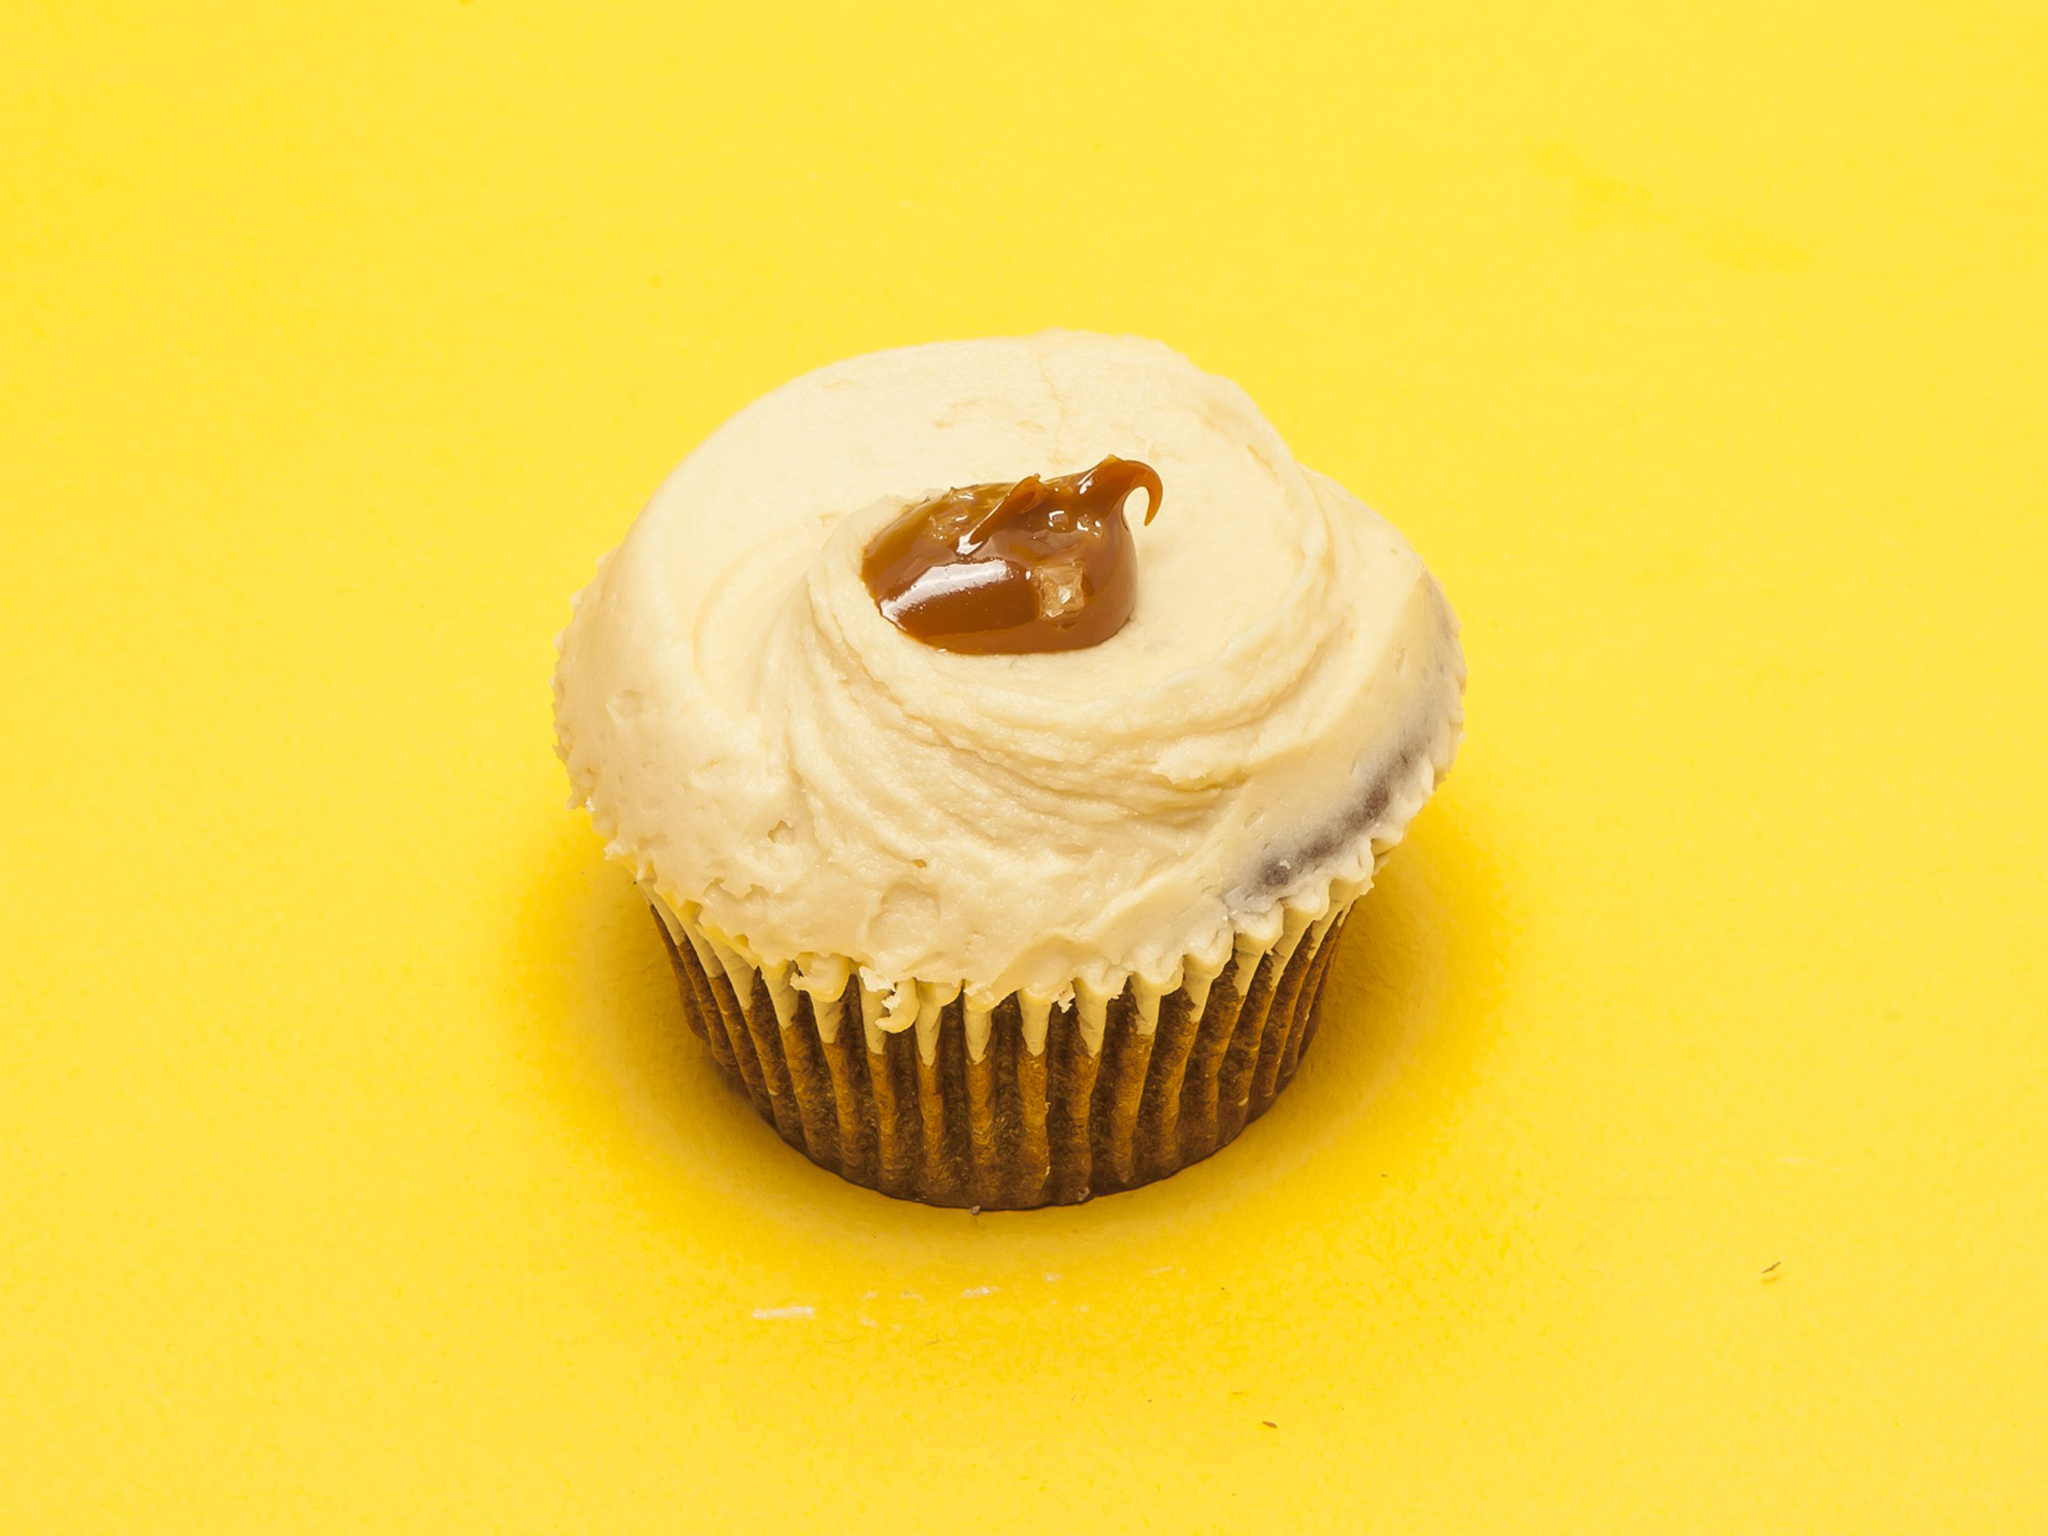 London's best cupcakes, Hummingbird Bakery, salted caramel cupcake